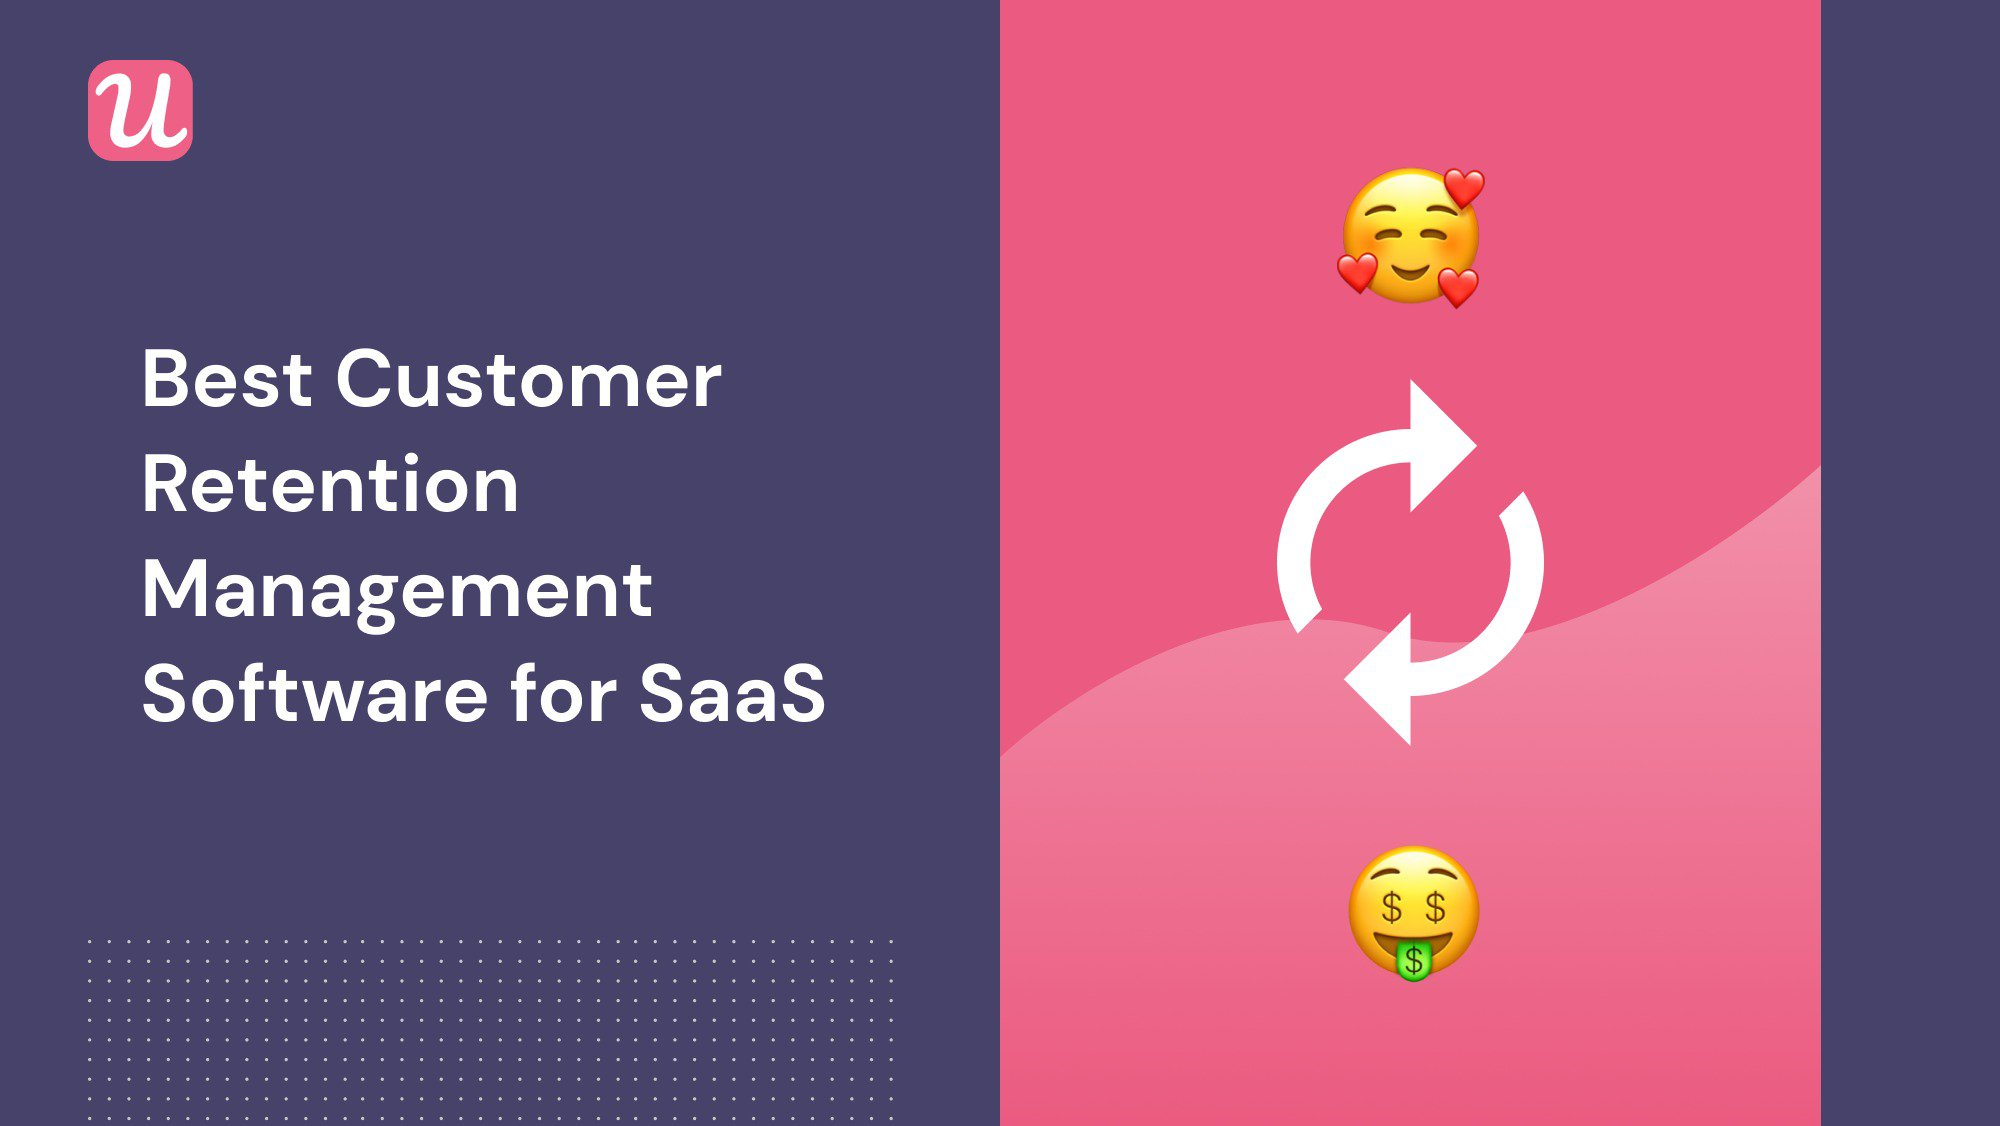 The Best Customer Retention Management Software of 2021